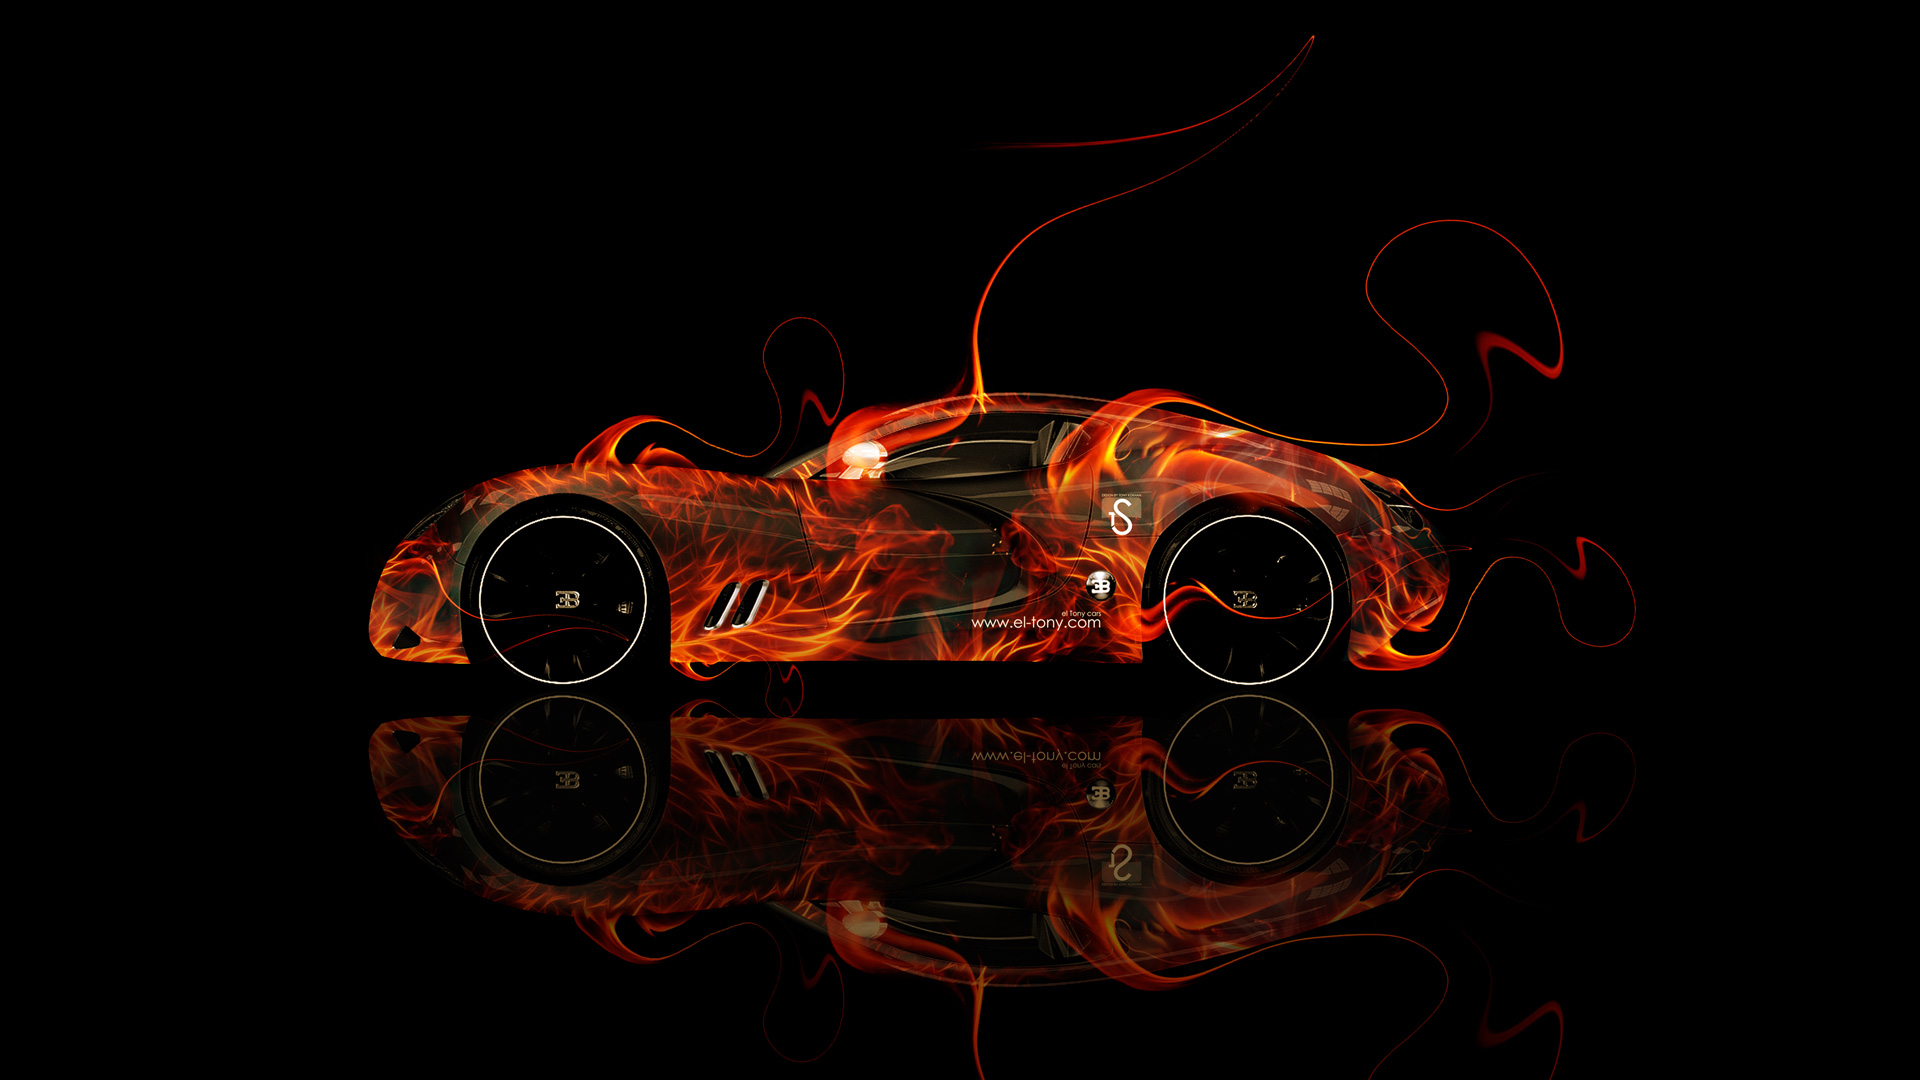 Etonnant Bugatti Gangloff Fire Abstract Car 2014 HD Wallpapers